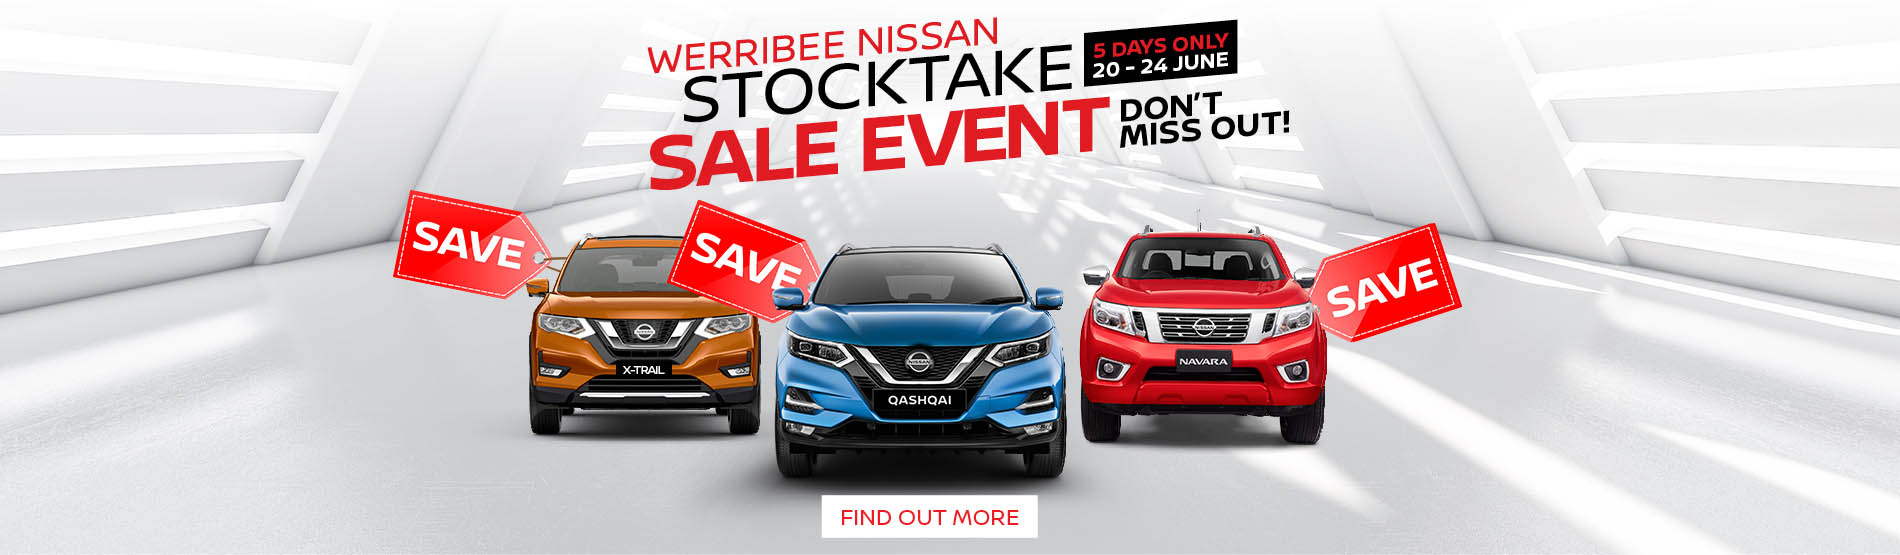 Werribee Nissan Stocktake Sale Event